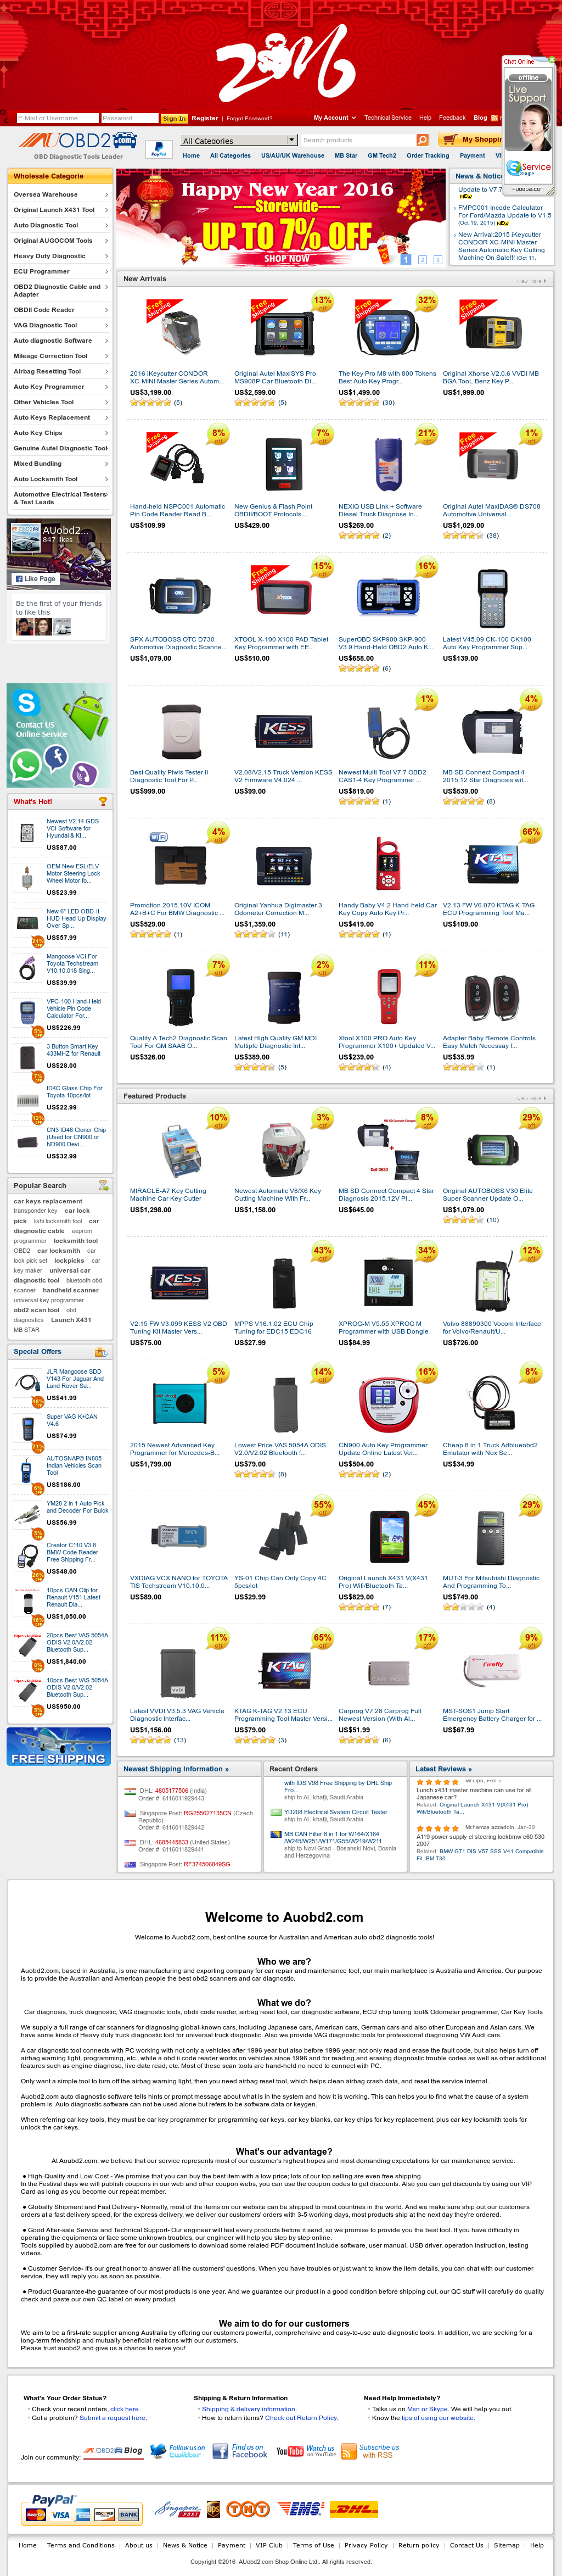 Owler Reports - Auobd2 com Shop Online Blog Free Download